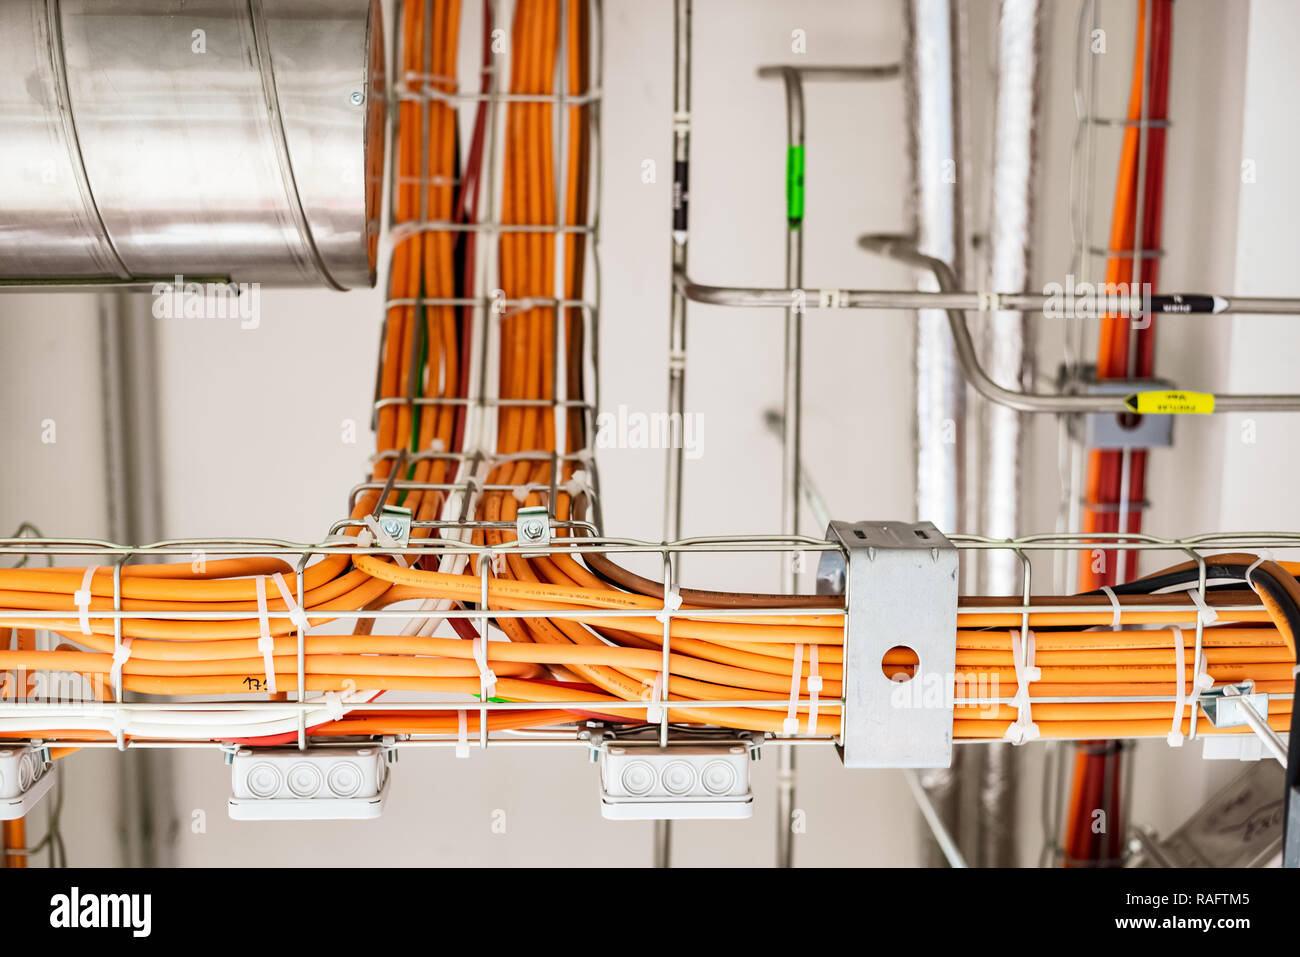 Awe Inspiring Electrical Wiring In A Modern Building Stock Photo 230230005 Alamy Wiring Digital Resources Cettecompassionincorg